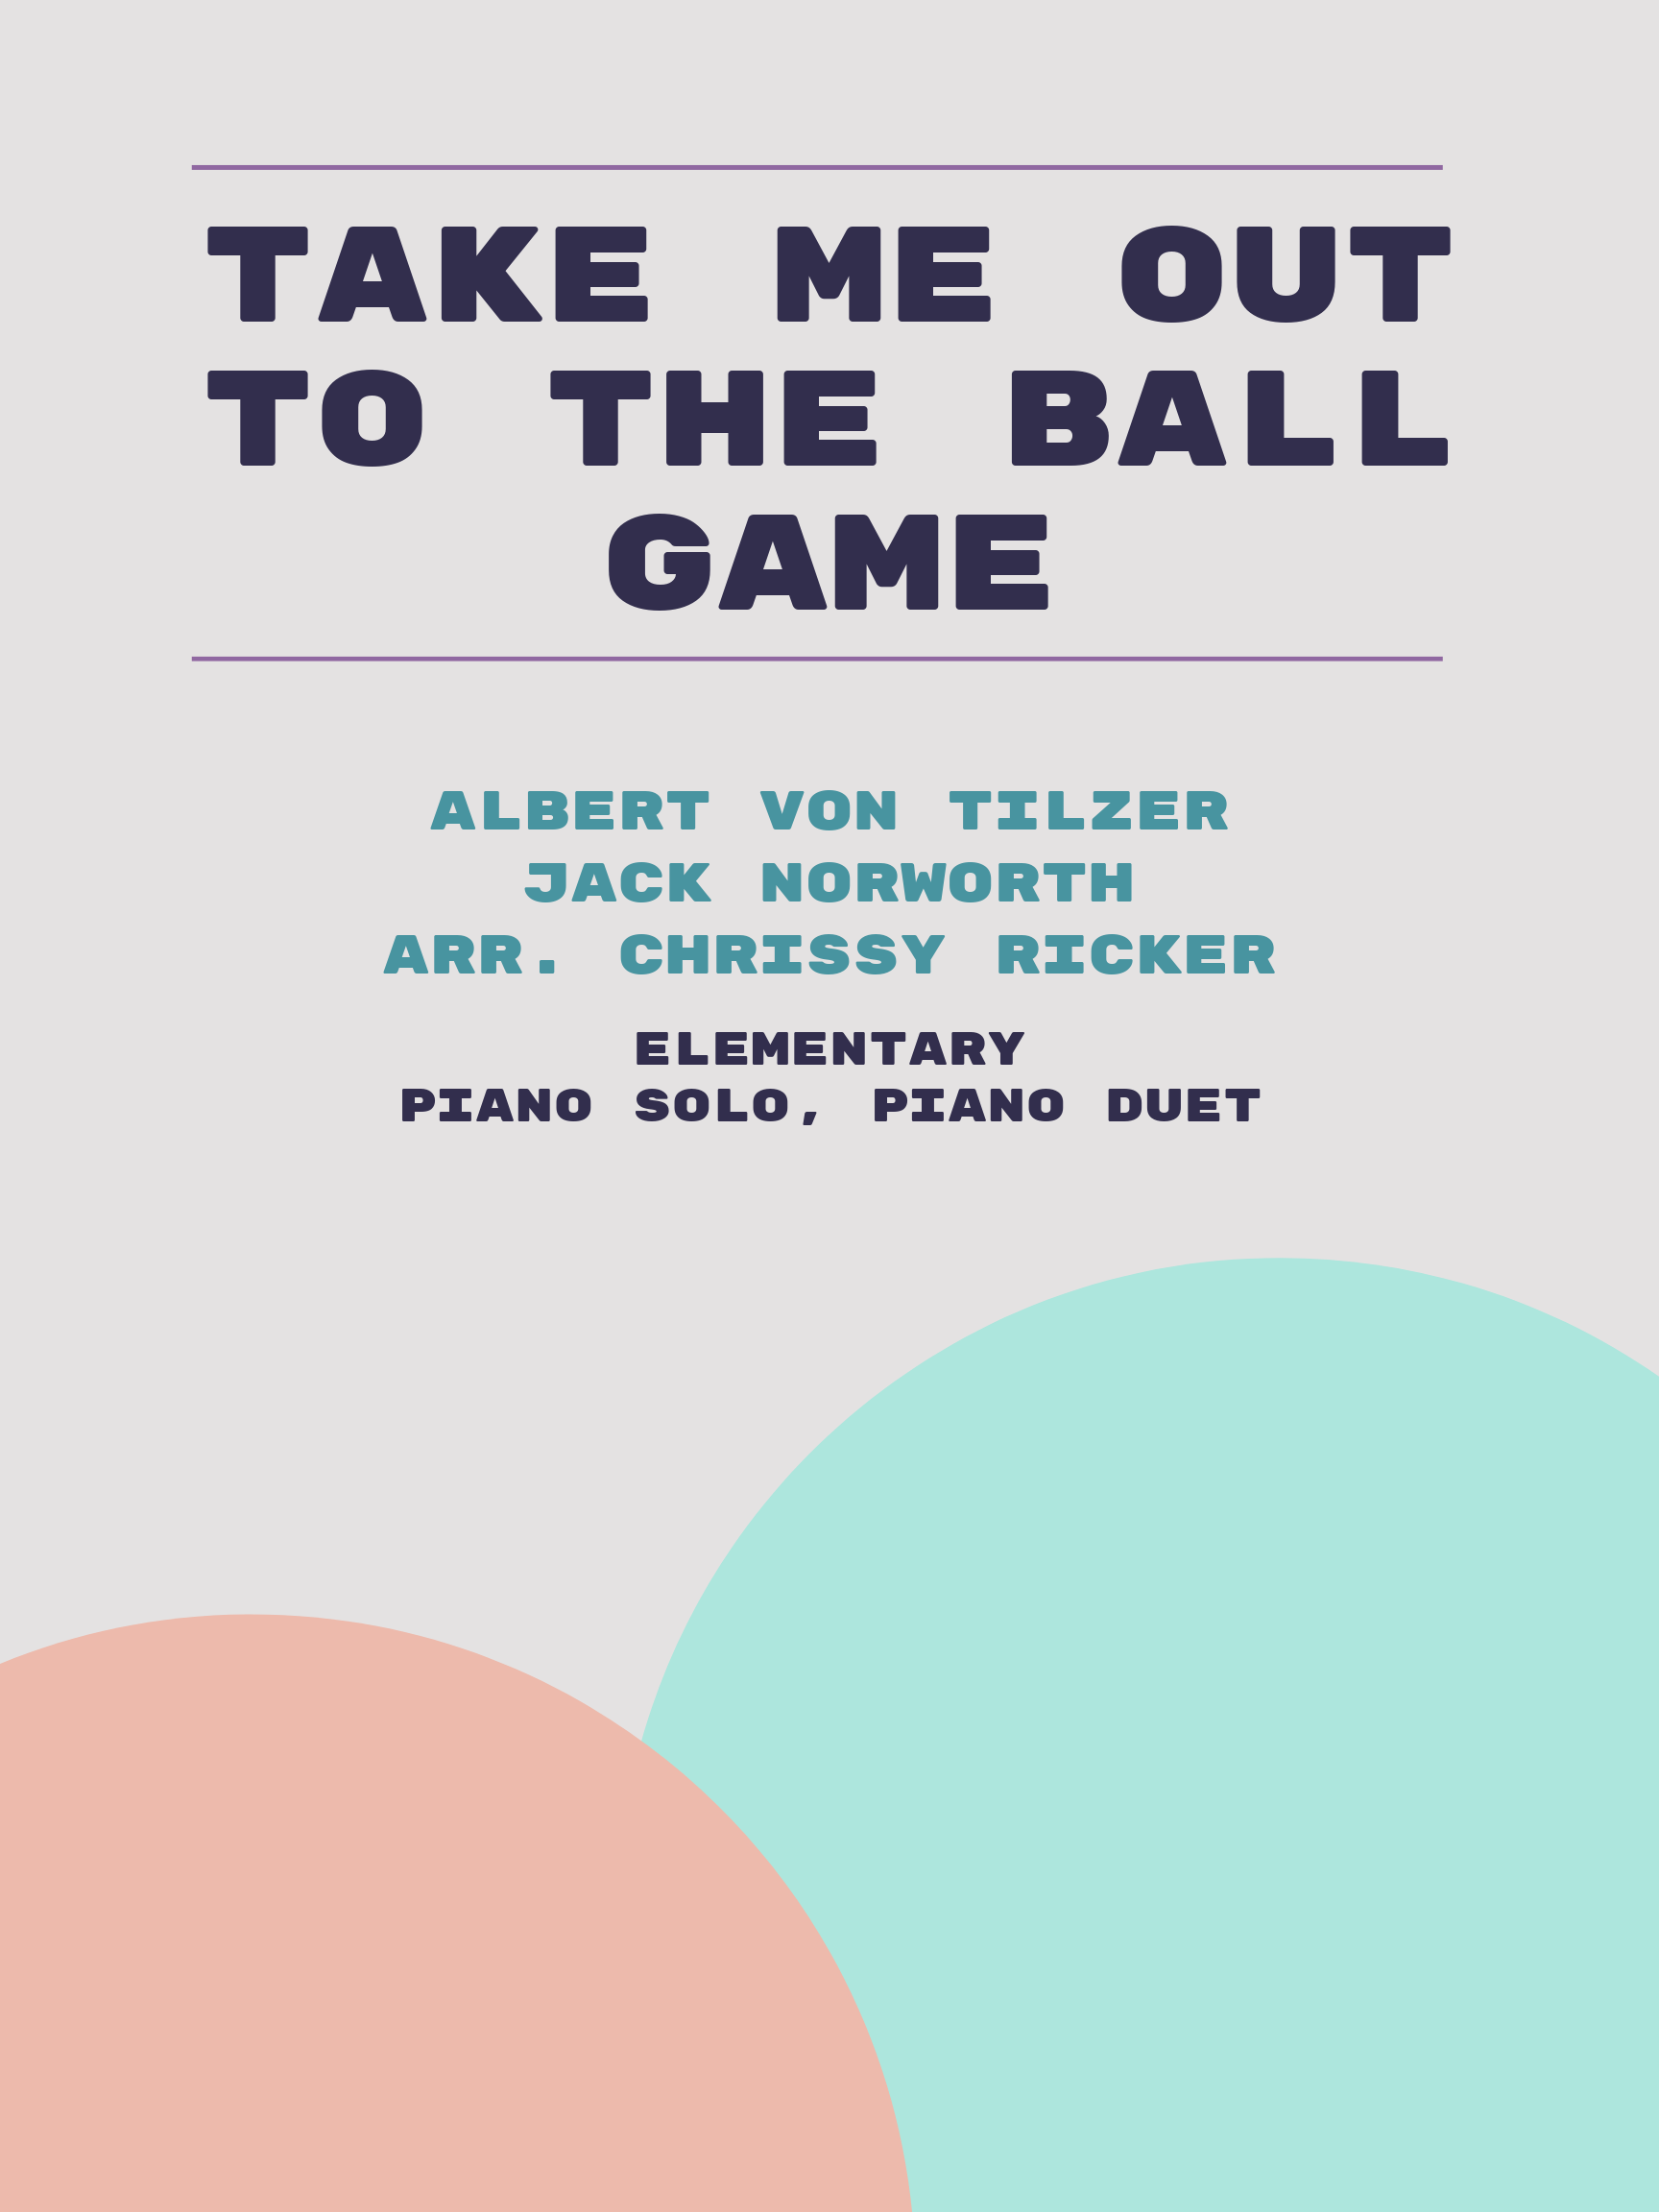 Take Me Out to the Ball Game by Albert Von Tilzer, Jack Norworth